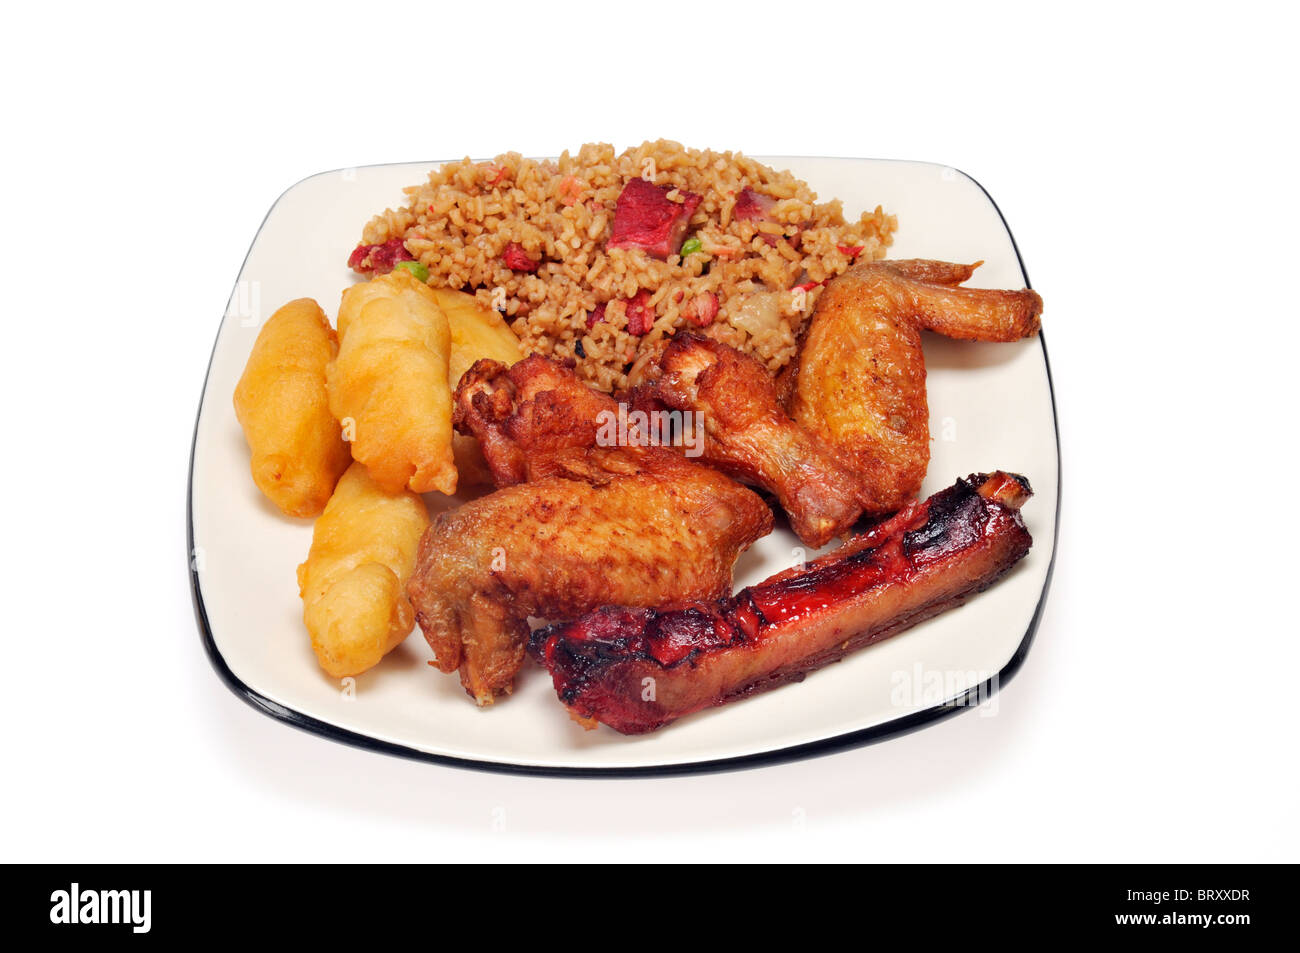 White dinner plate with a chinese food meal of pork fried rice chicken fingers chicken wings u0026 spare rib on white background.  sc 1 st  Alamy & White dinner plate with a chinese food meal of pork fried rice Stock ...